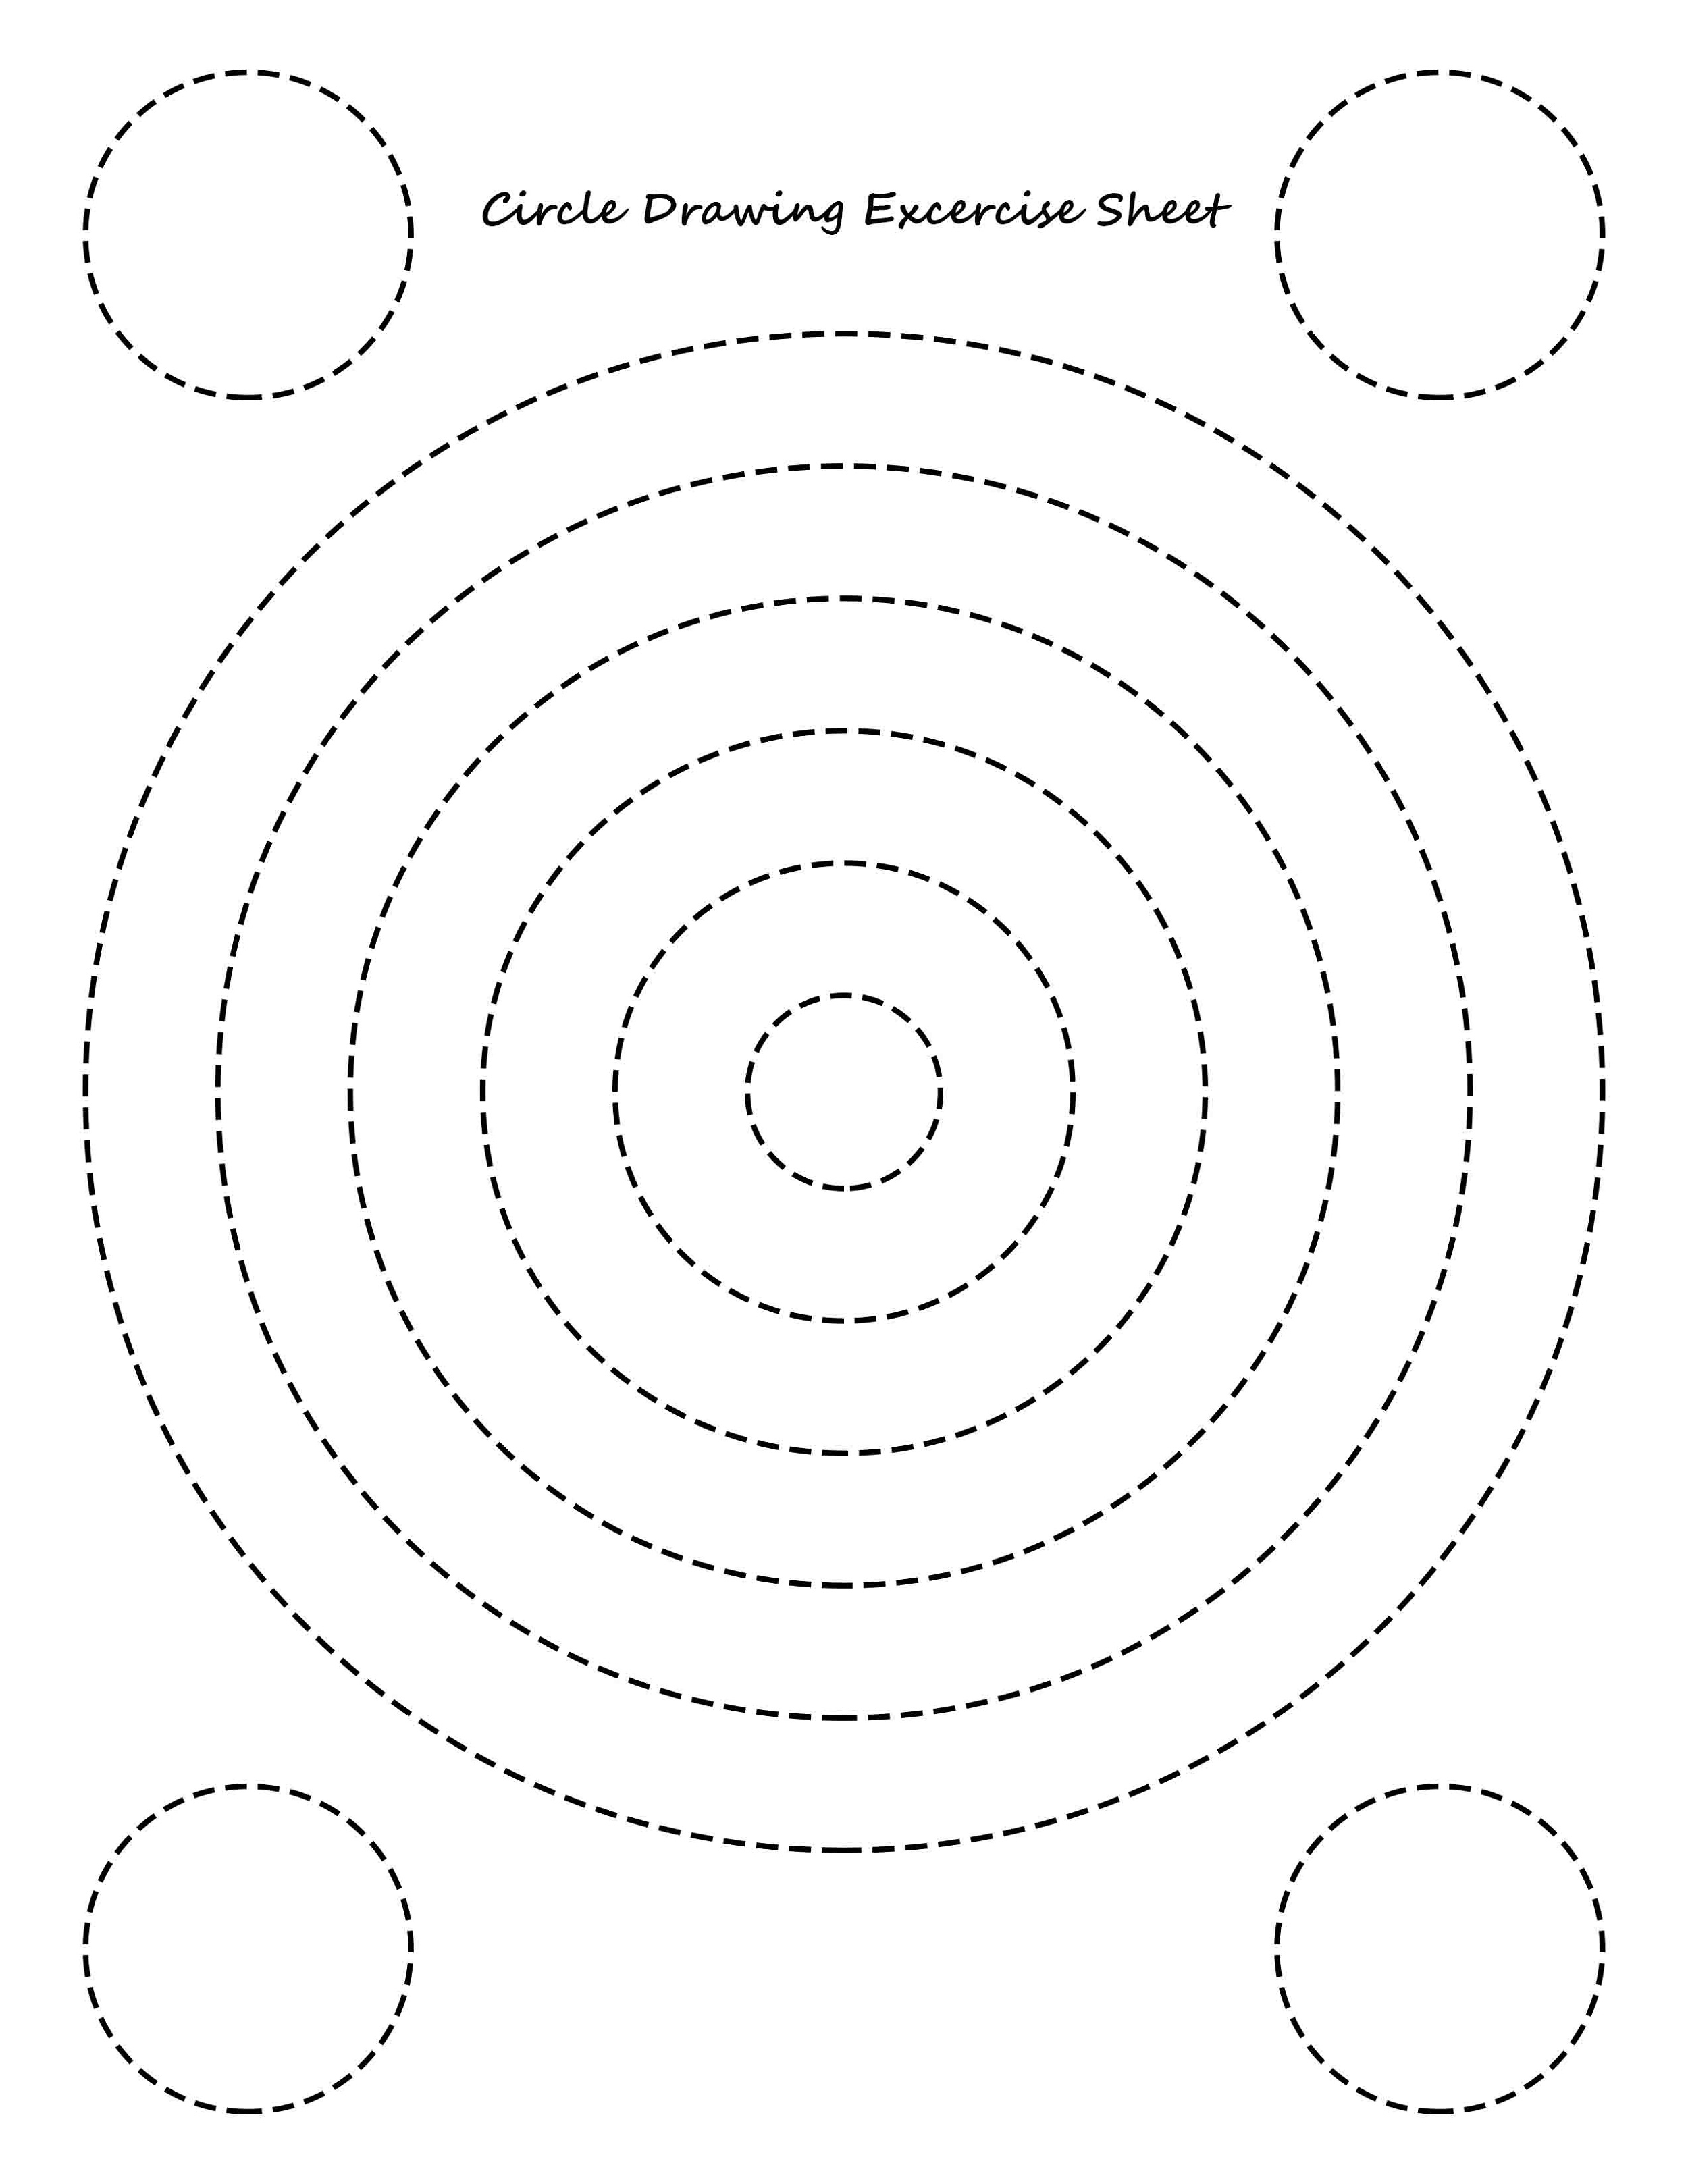 Circle Drawing Exercise Educational Worksheets For